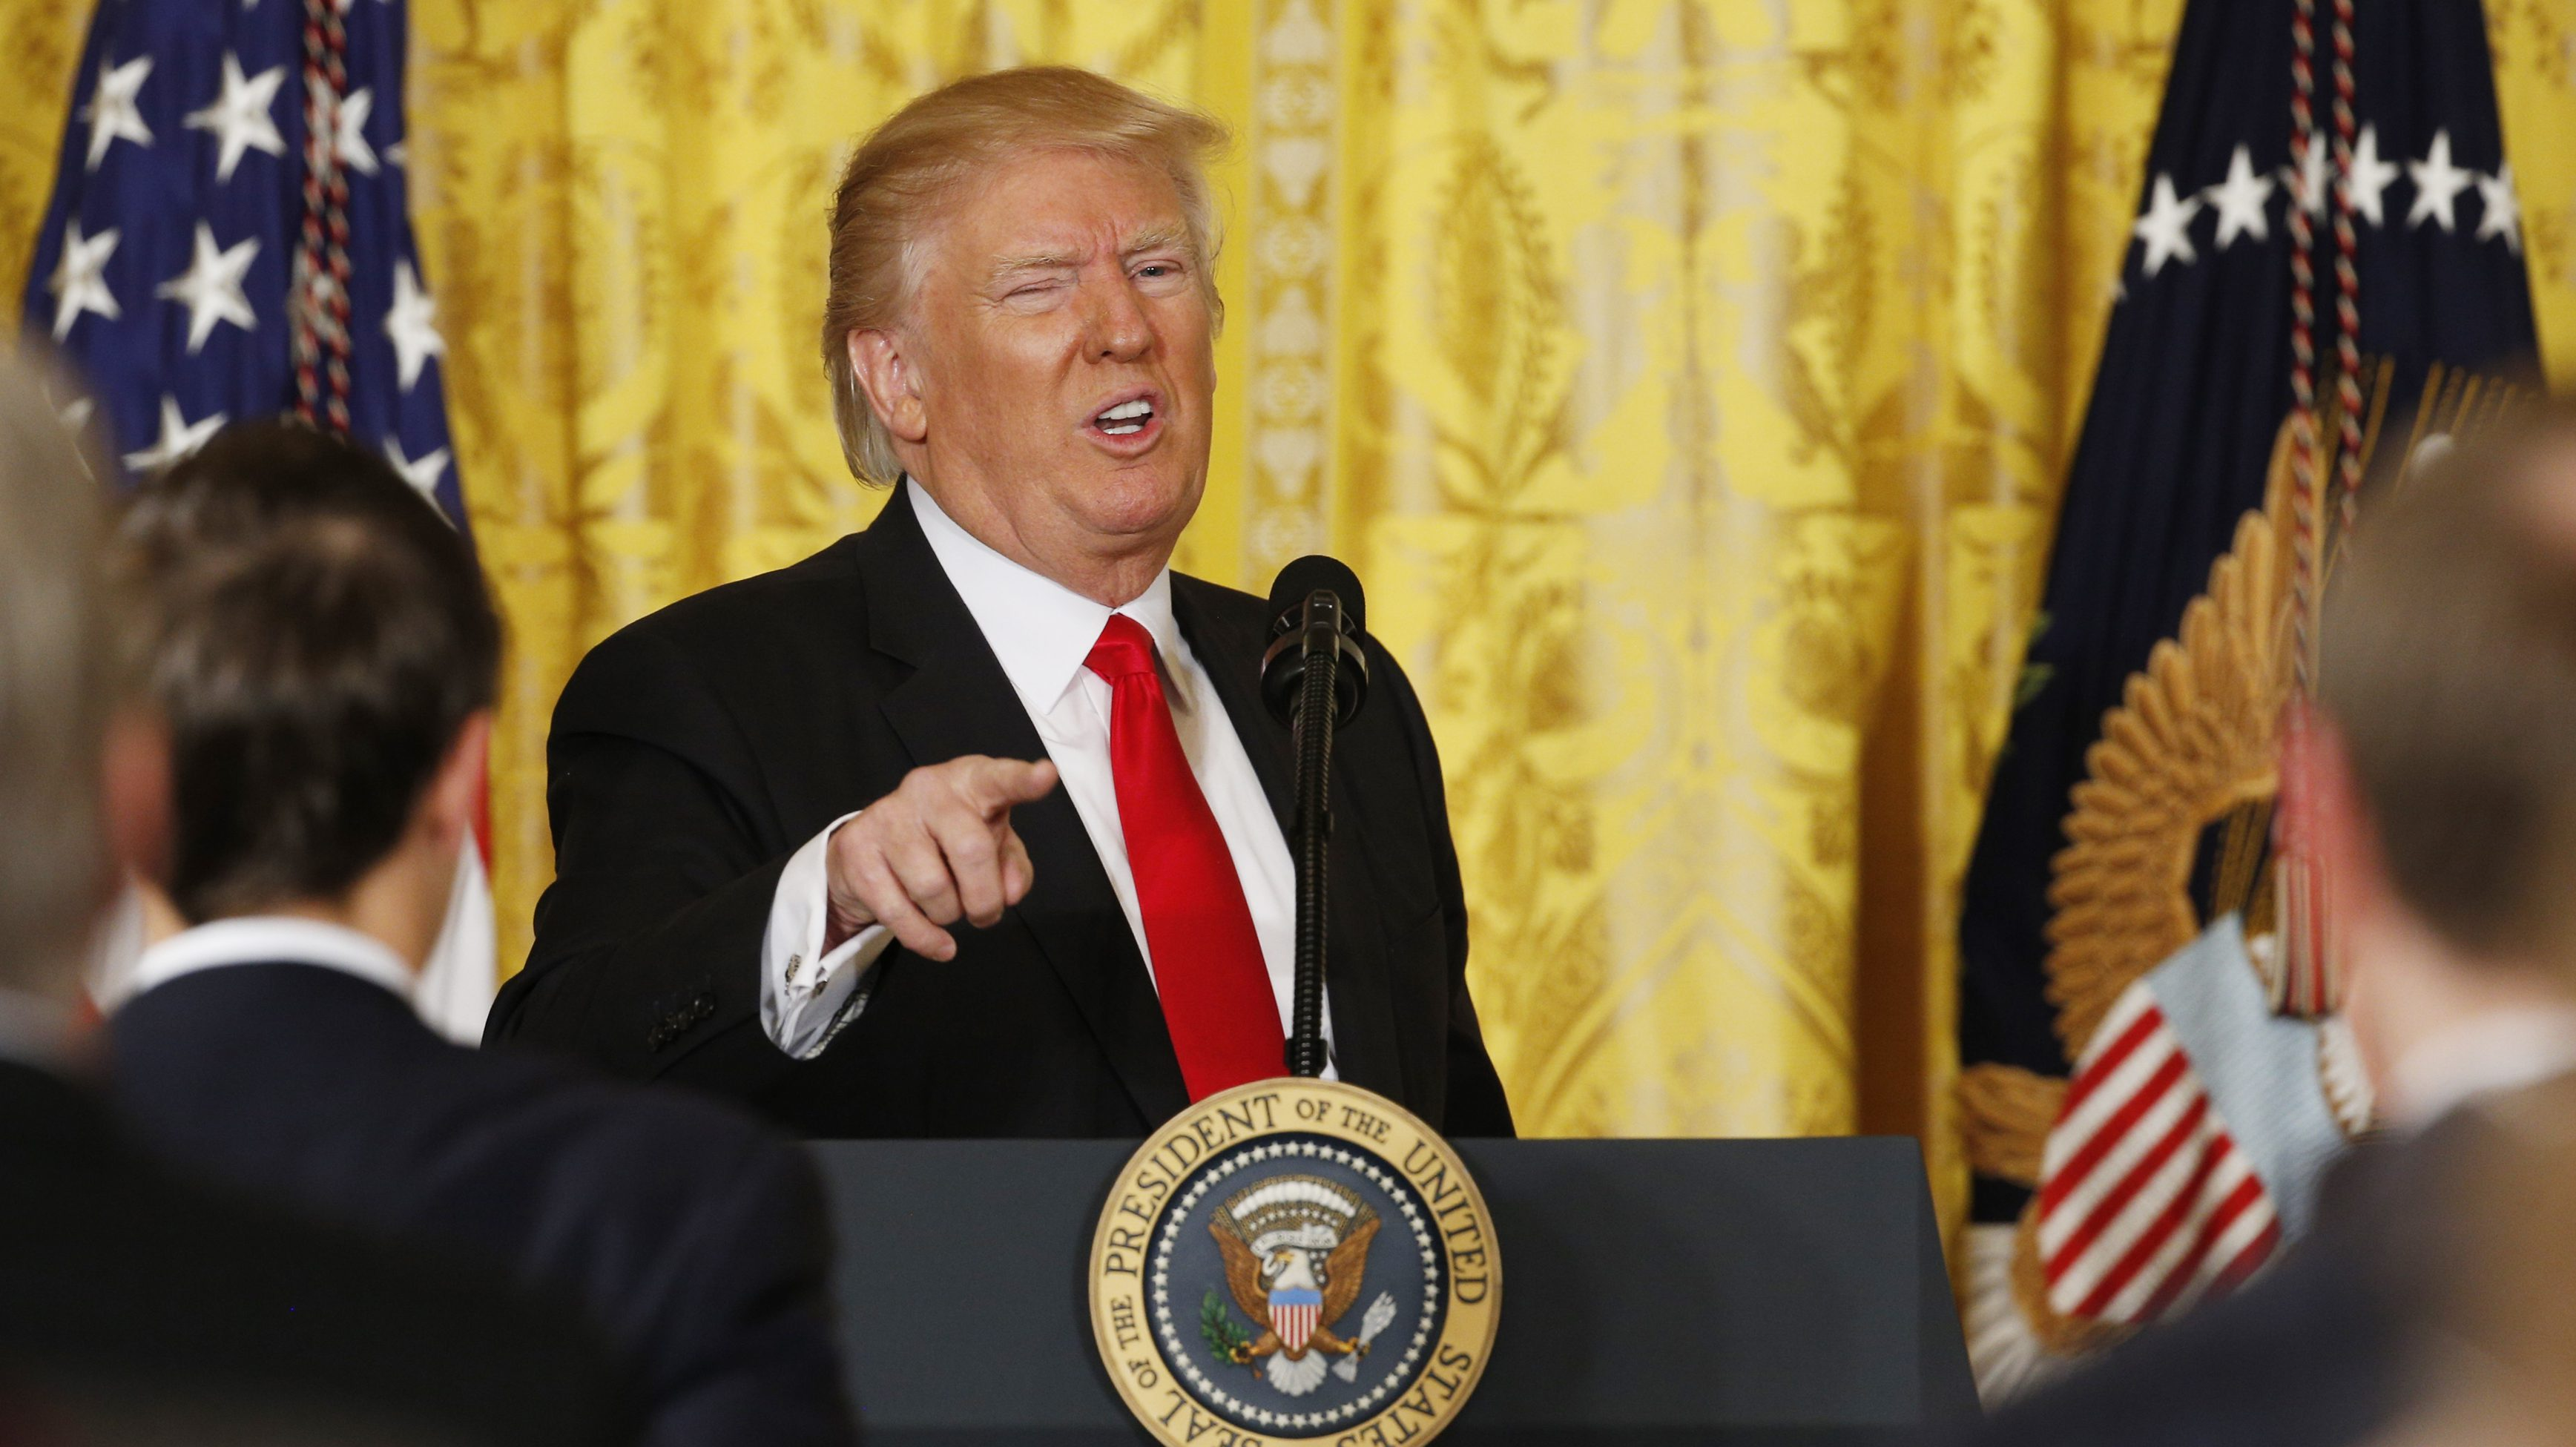 U.S. President Donald Trump gestures as he leaves the podium after a news conference at the White House in Washington, U.S., February 16, 2017.  REUTERS/Kevin Lamarque   - RTSZ1DB